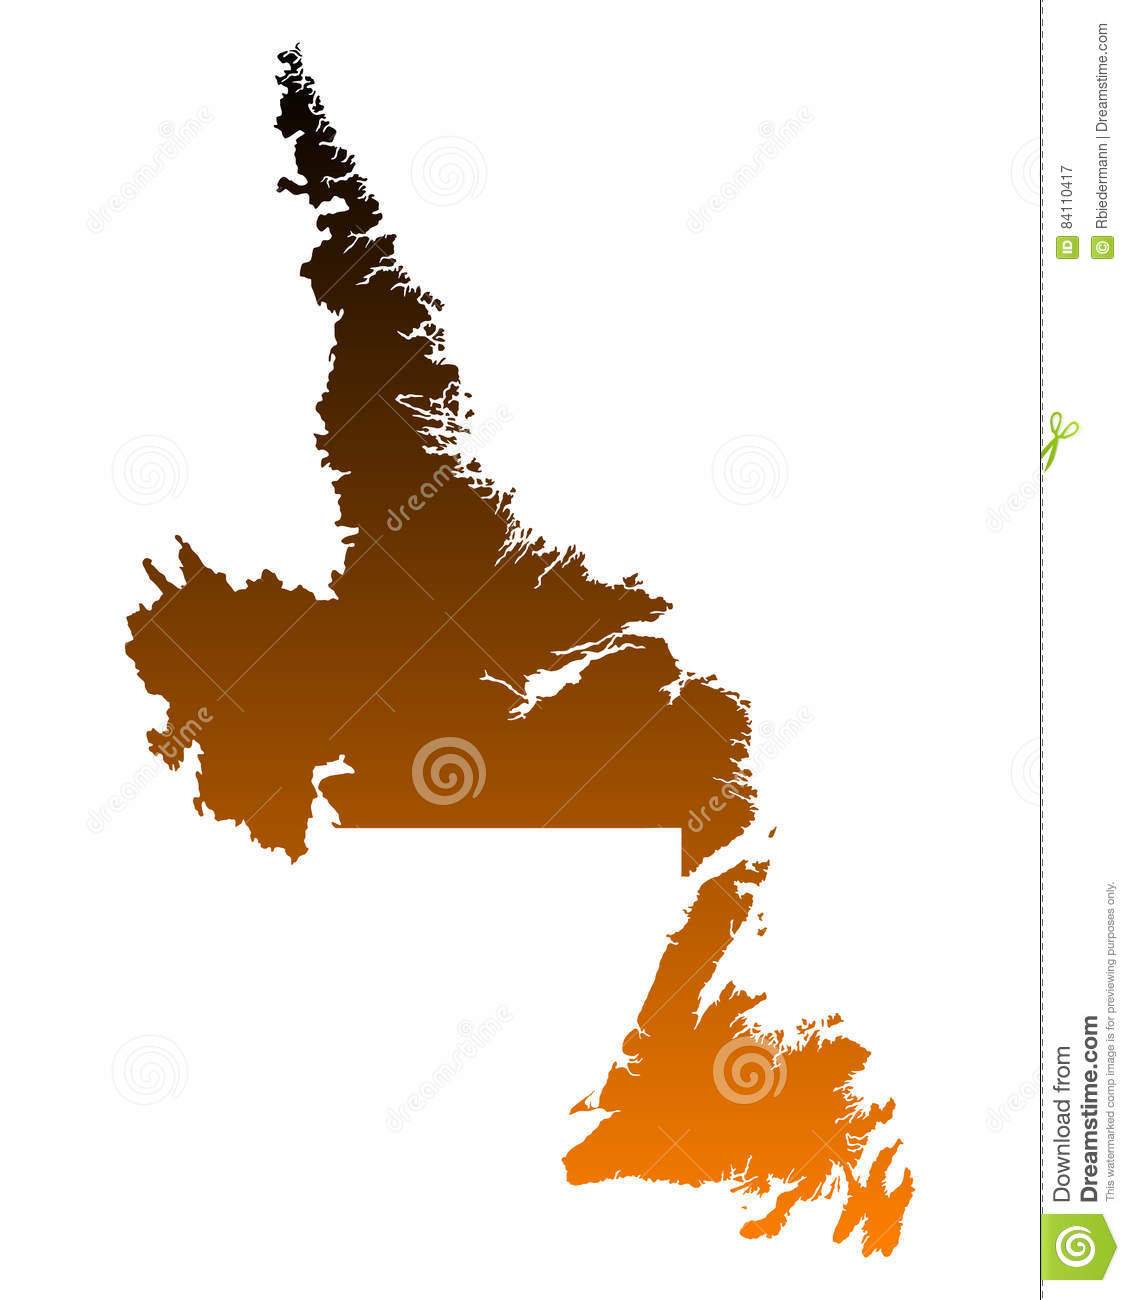 Map Of Newfoundland And Lador Stock Vector - Illustration of ... Detailed Map Of Newfoundland on